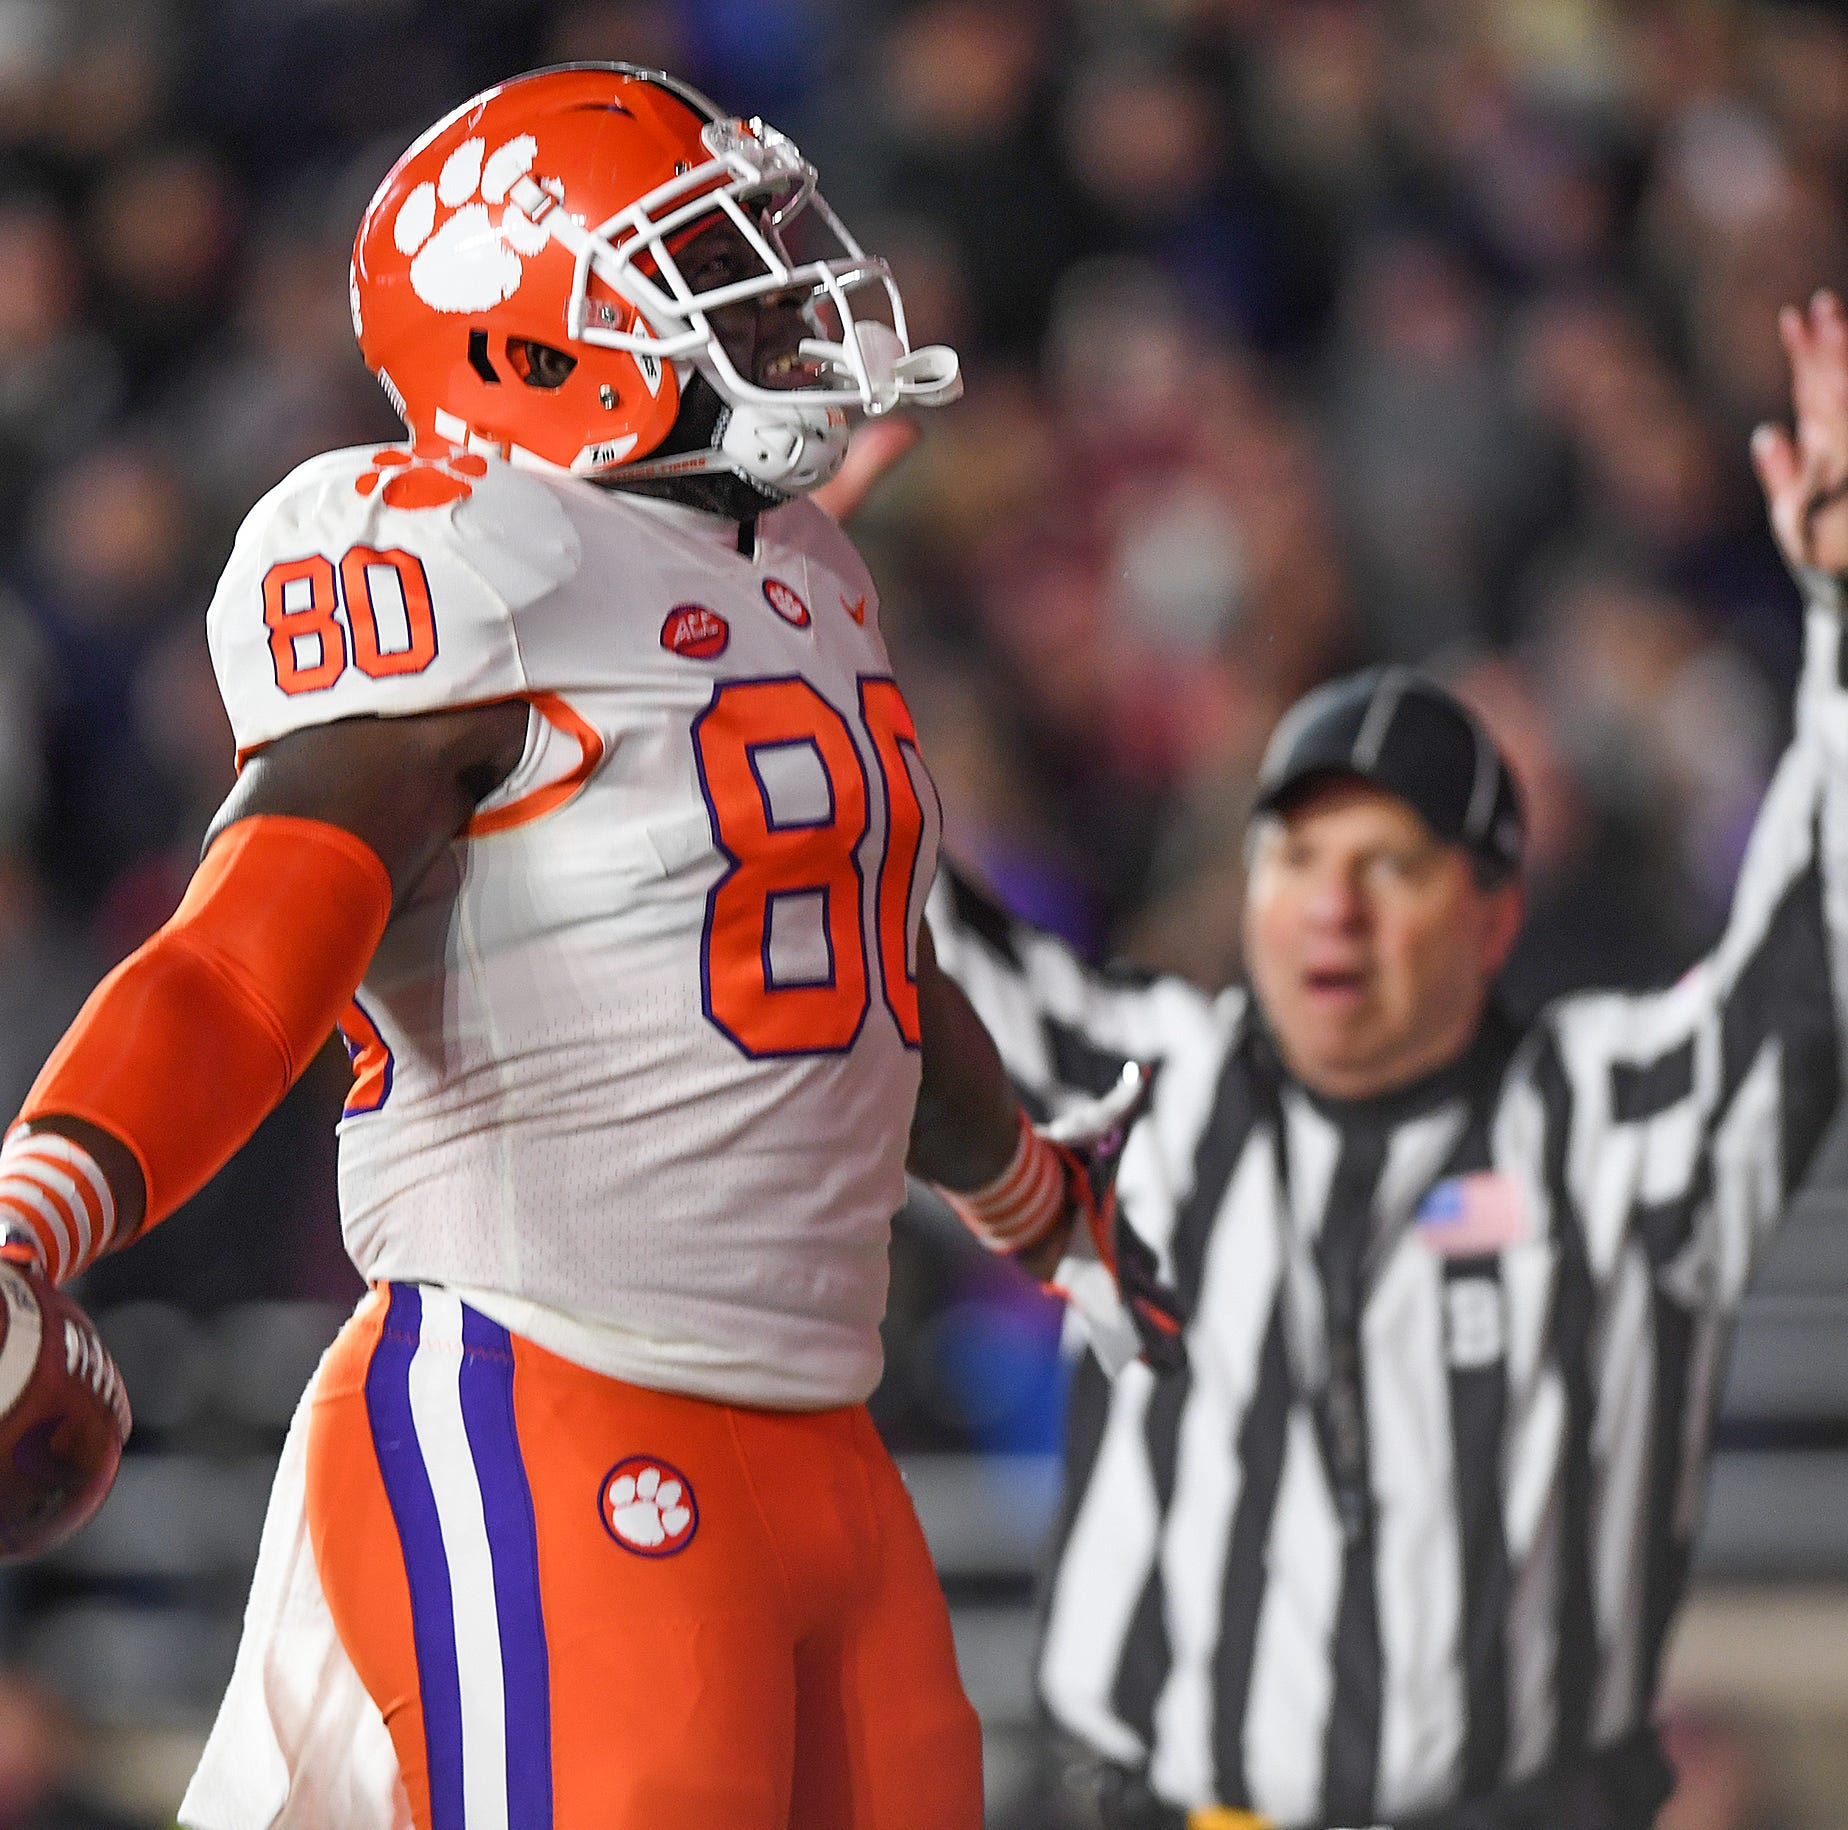 Clemson football players realize Senior Day will be rewarding yet bittersweet